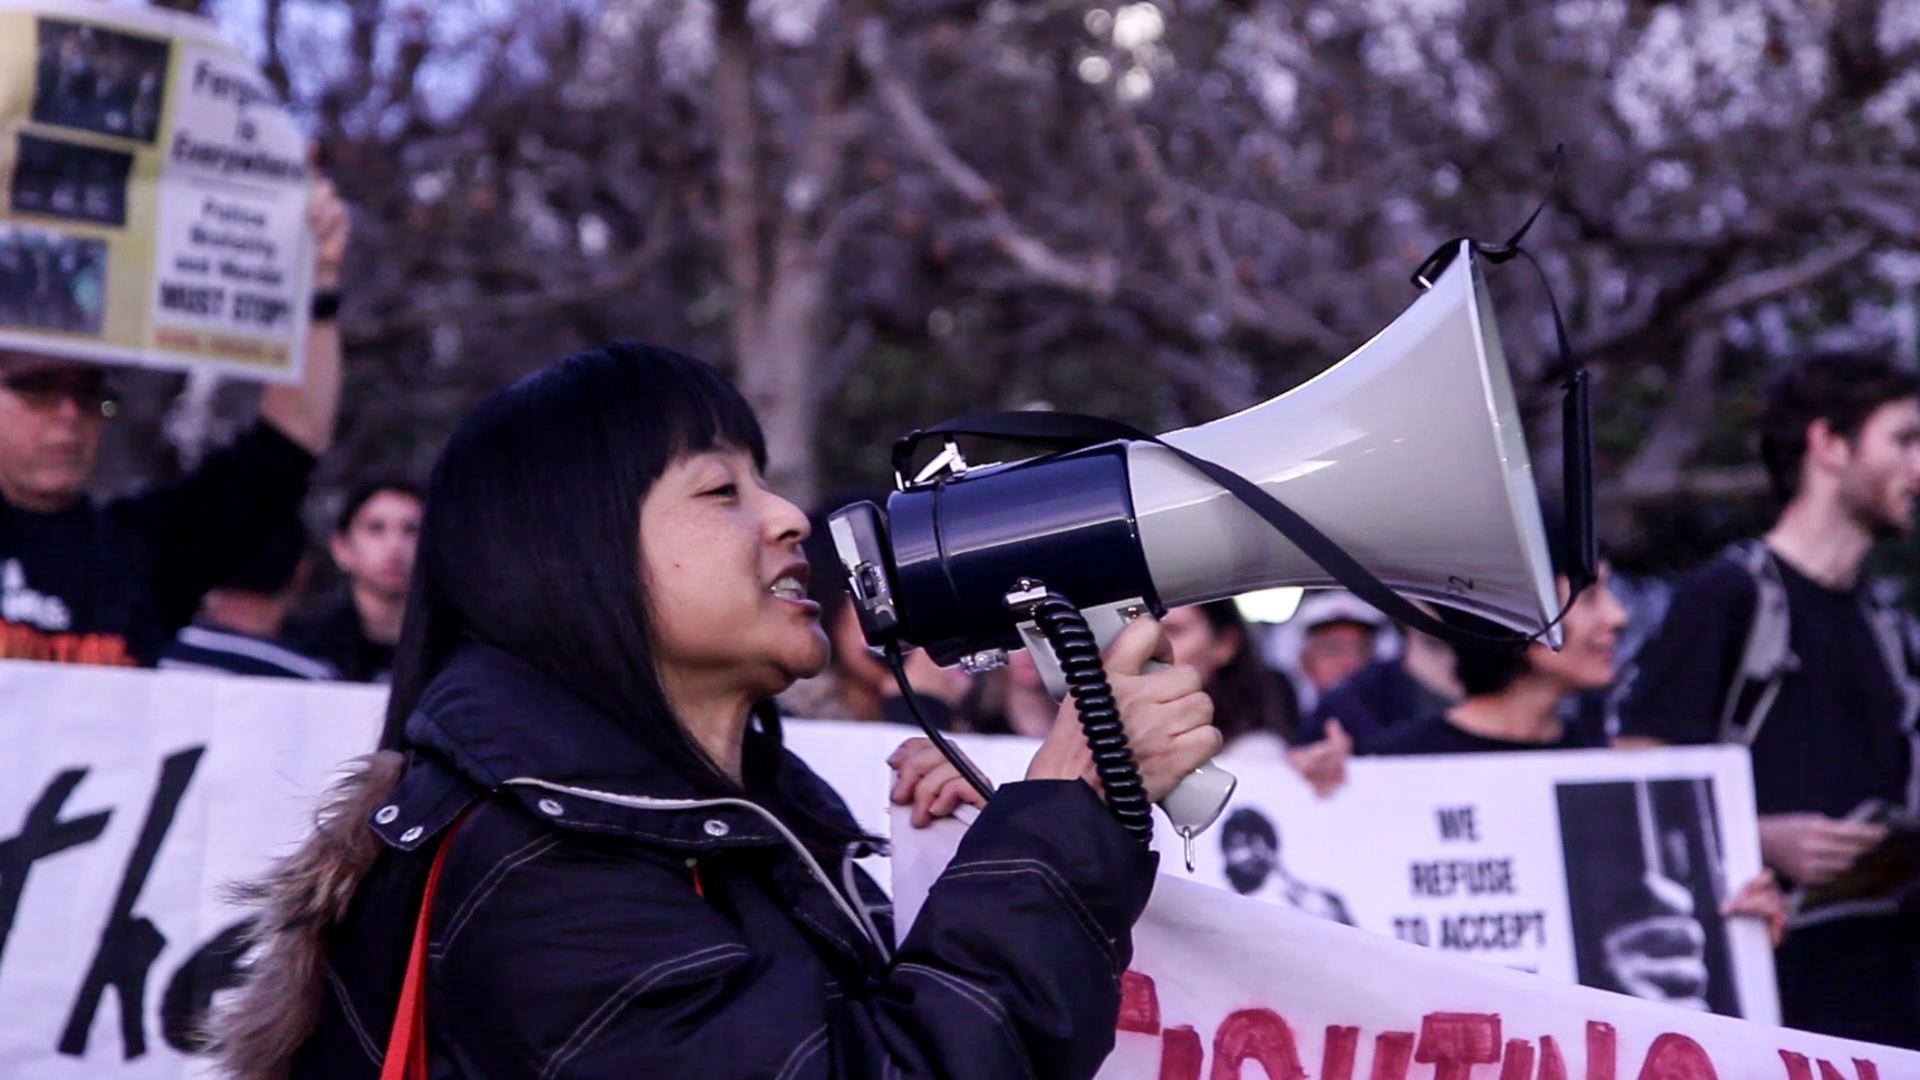 UC Berkeley Students Learn From Protests